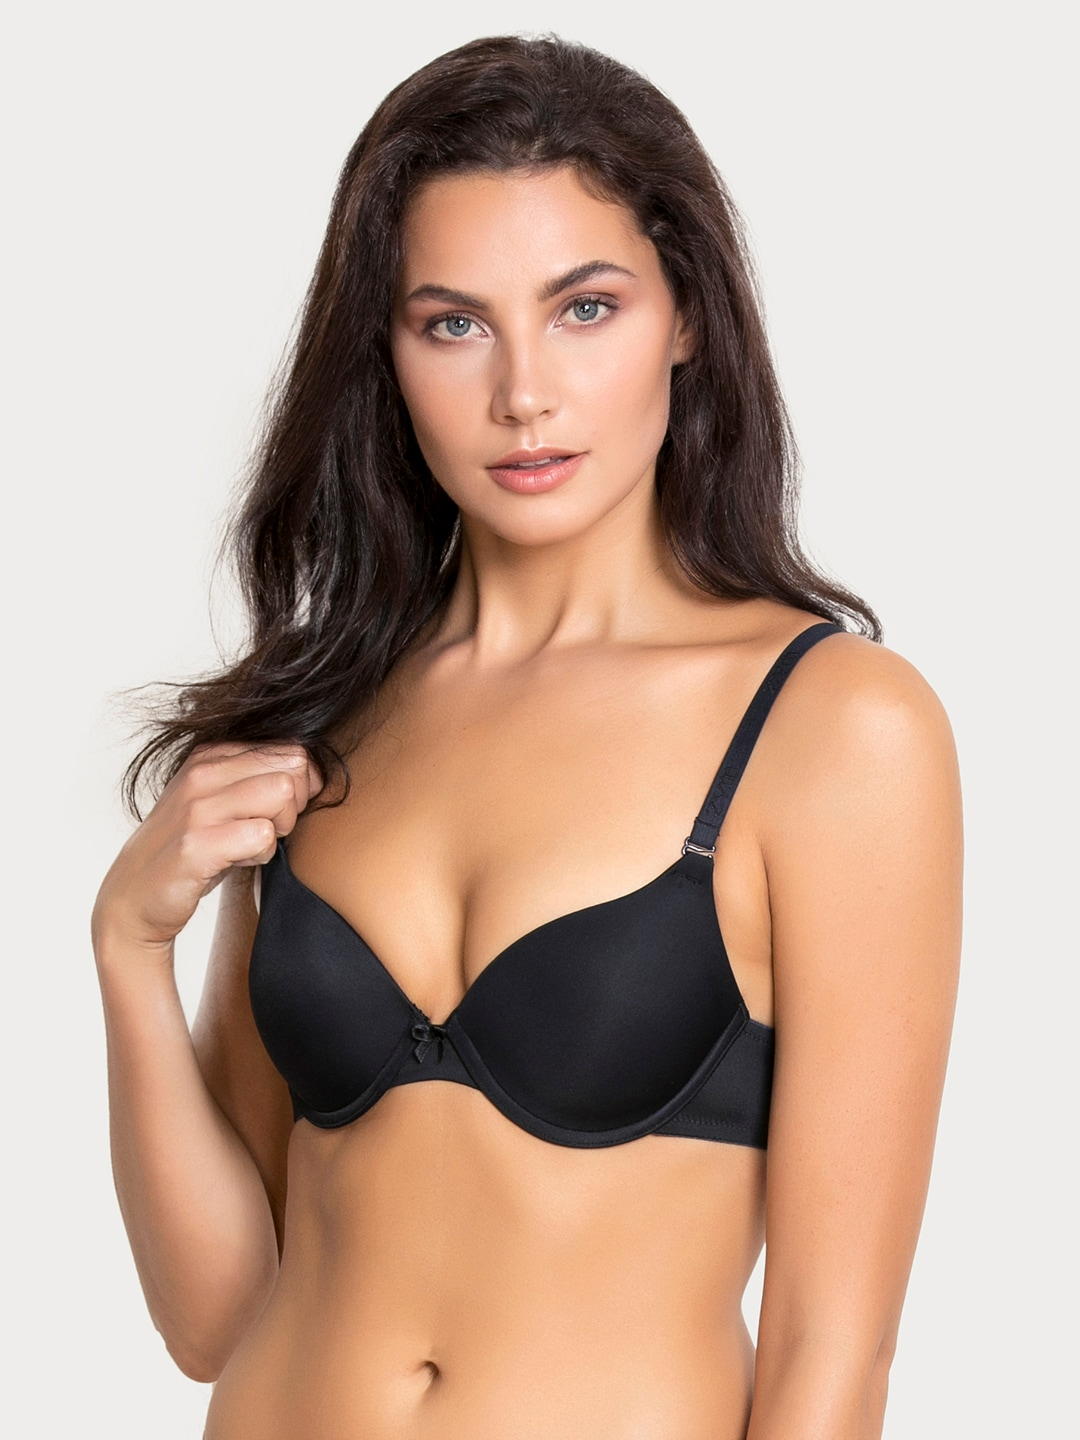 2d26995c610 Push Up Bra - Buy Push-Up Bras for ladies Online   Best Price